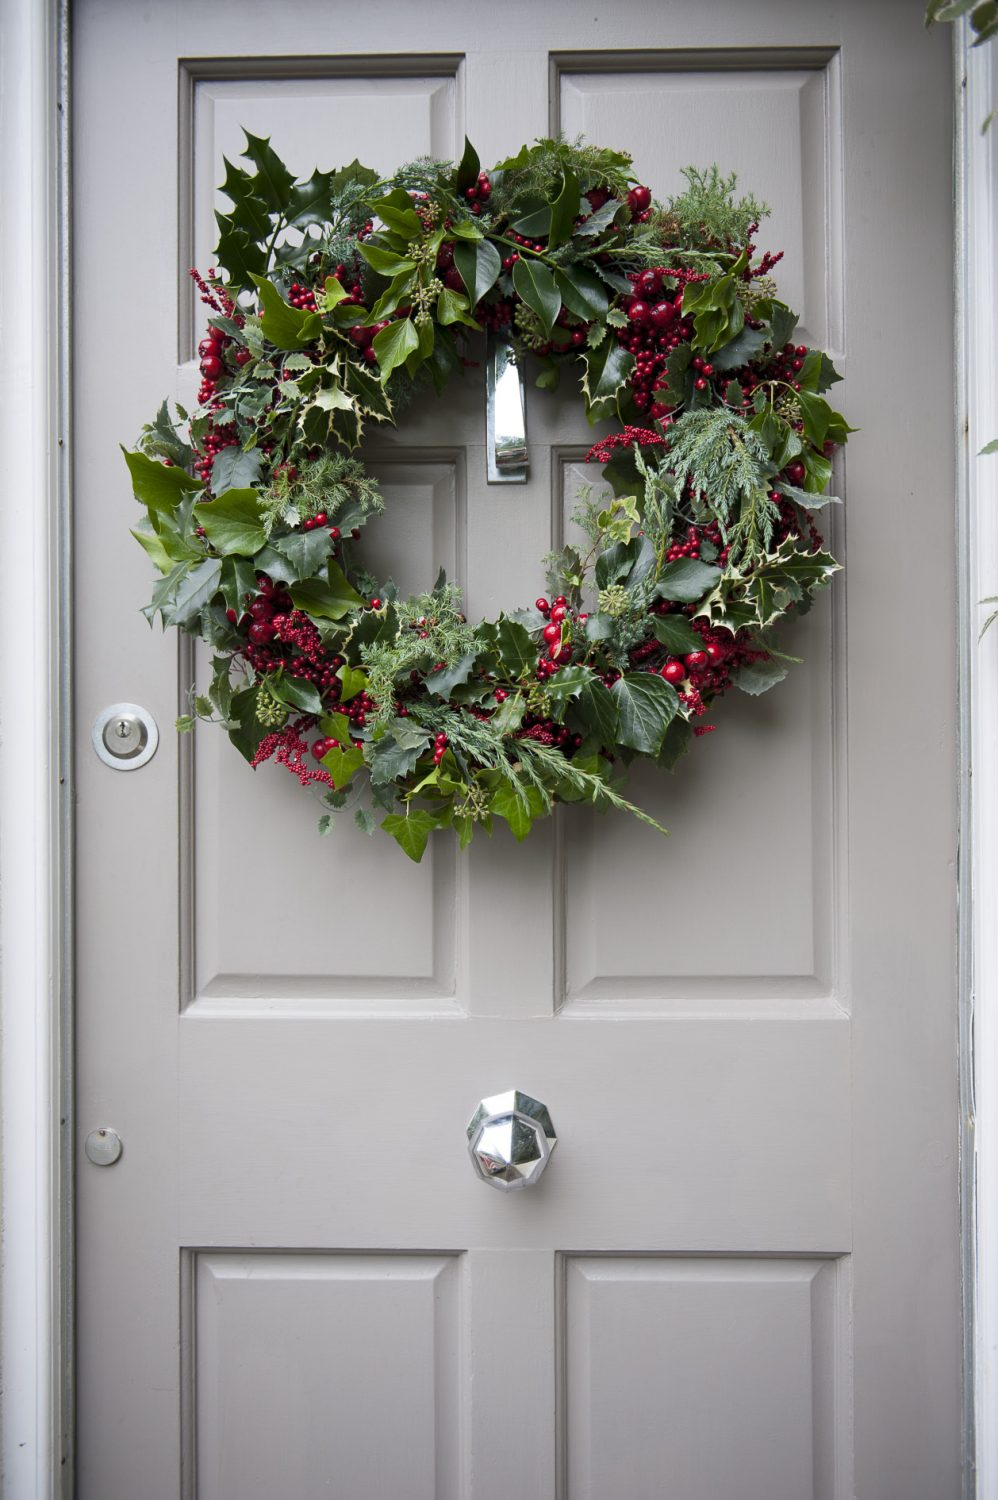 A freshly-made wreath studded with jewel-red berries greets visitors to the front door